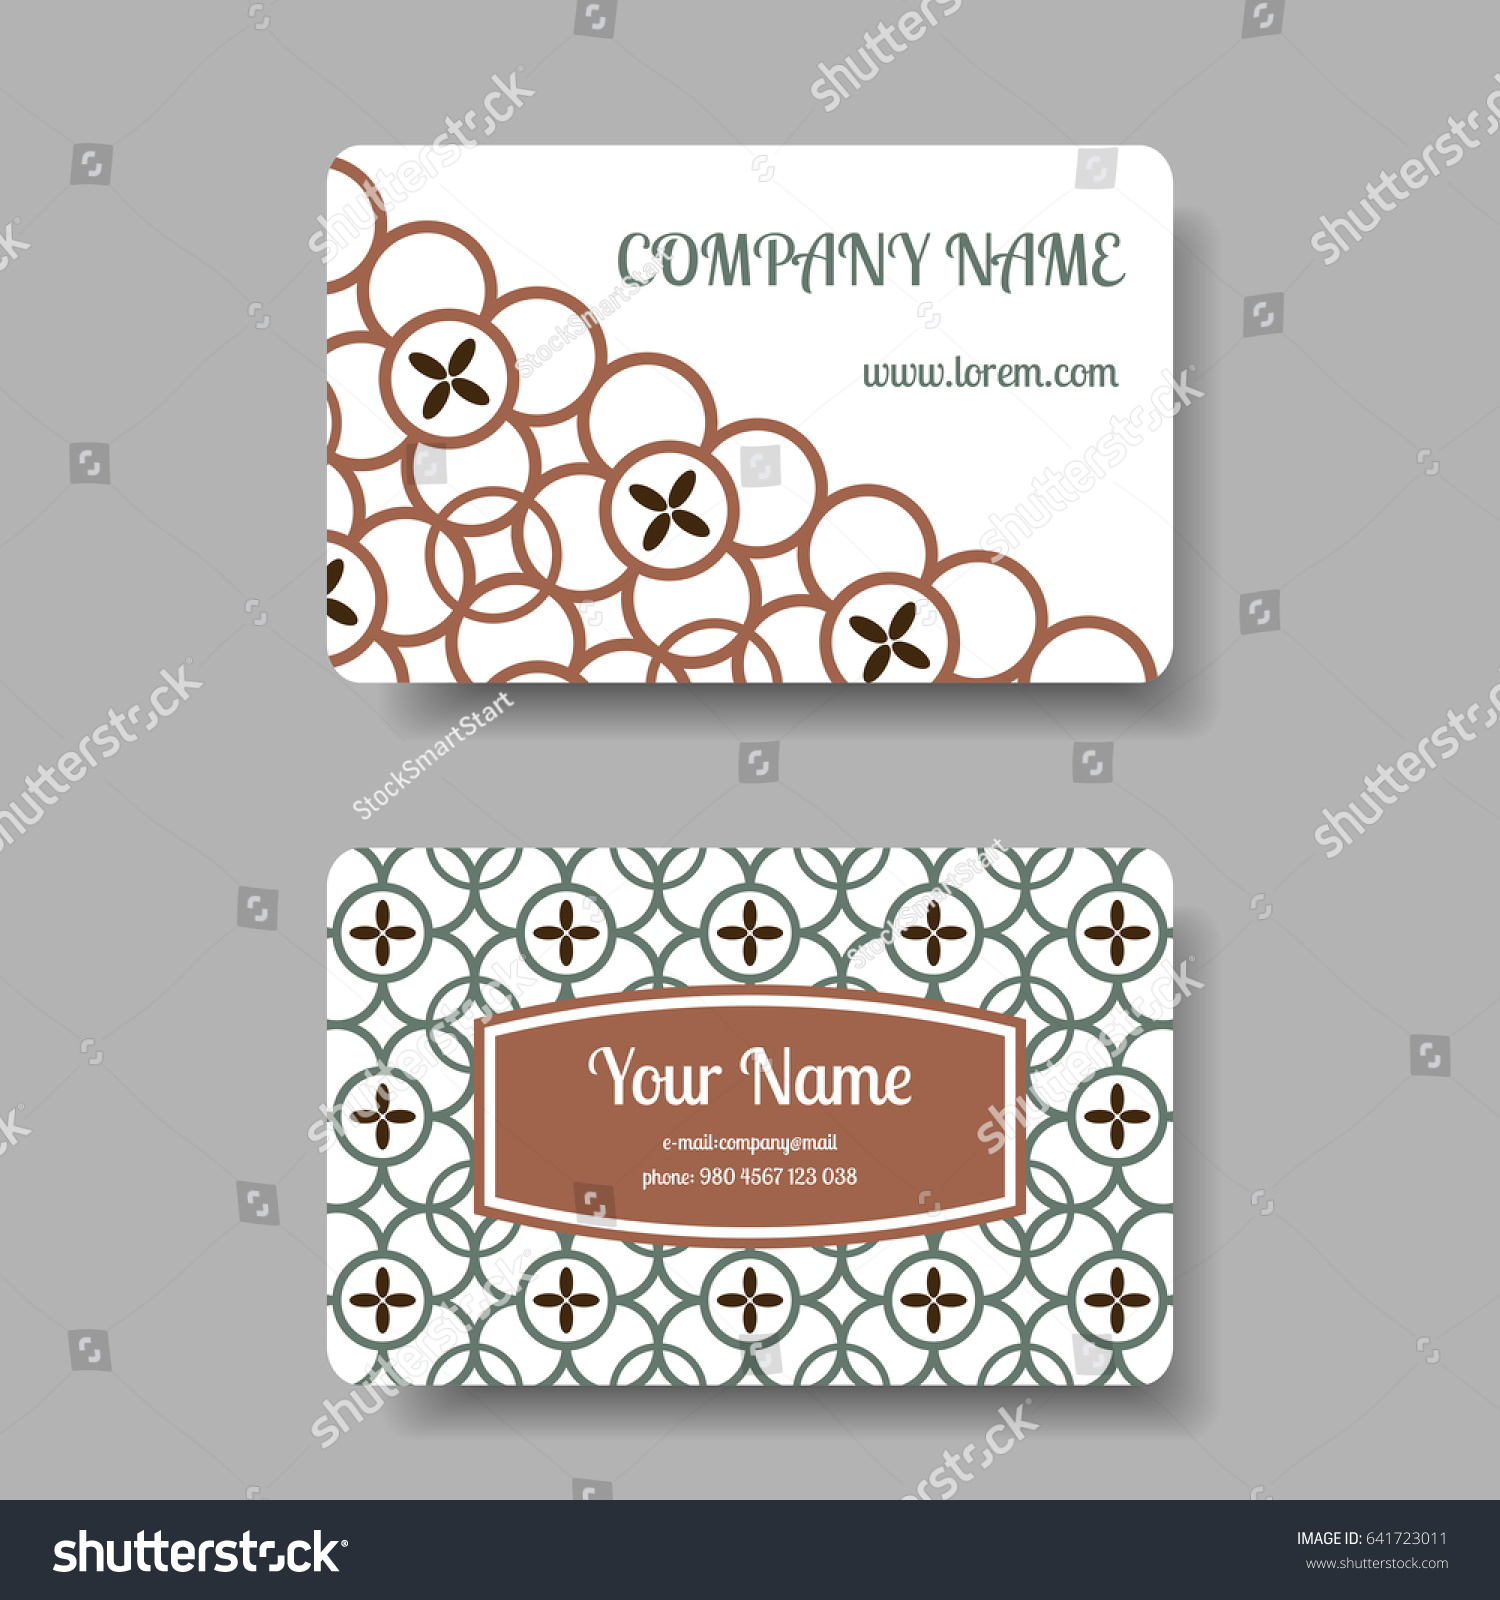 Vintage Business Card Collection Chinese Ornament Stock ...